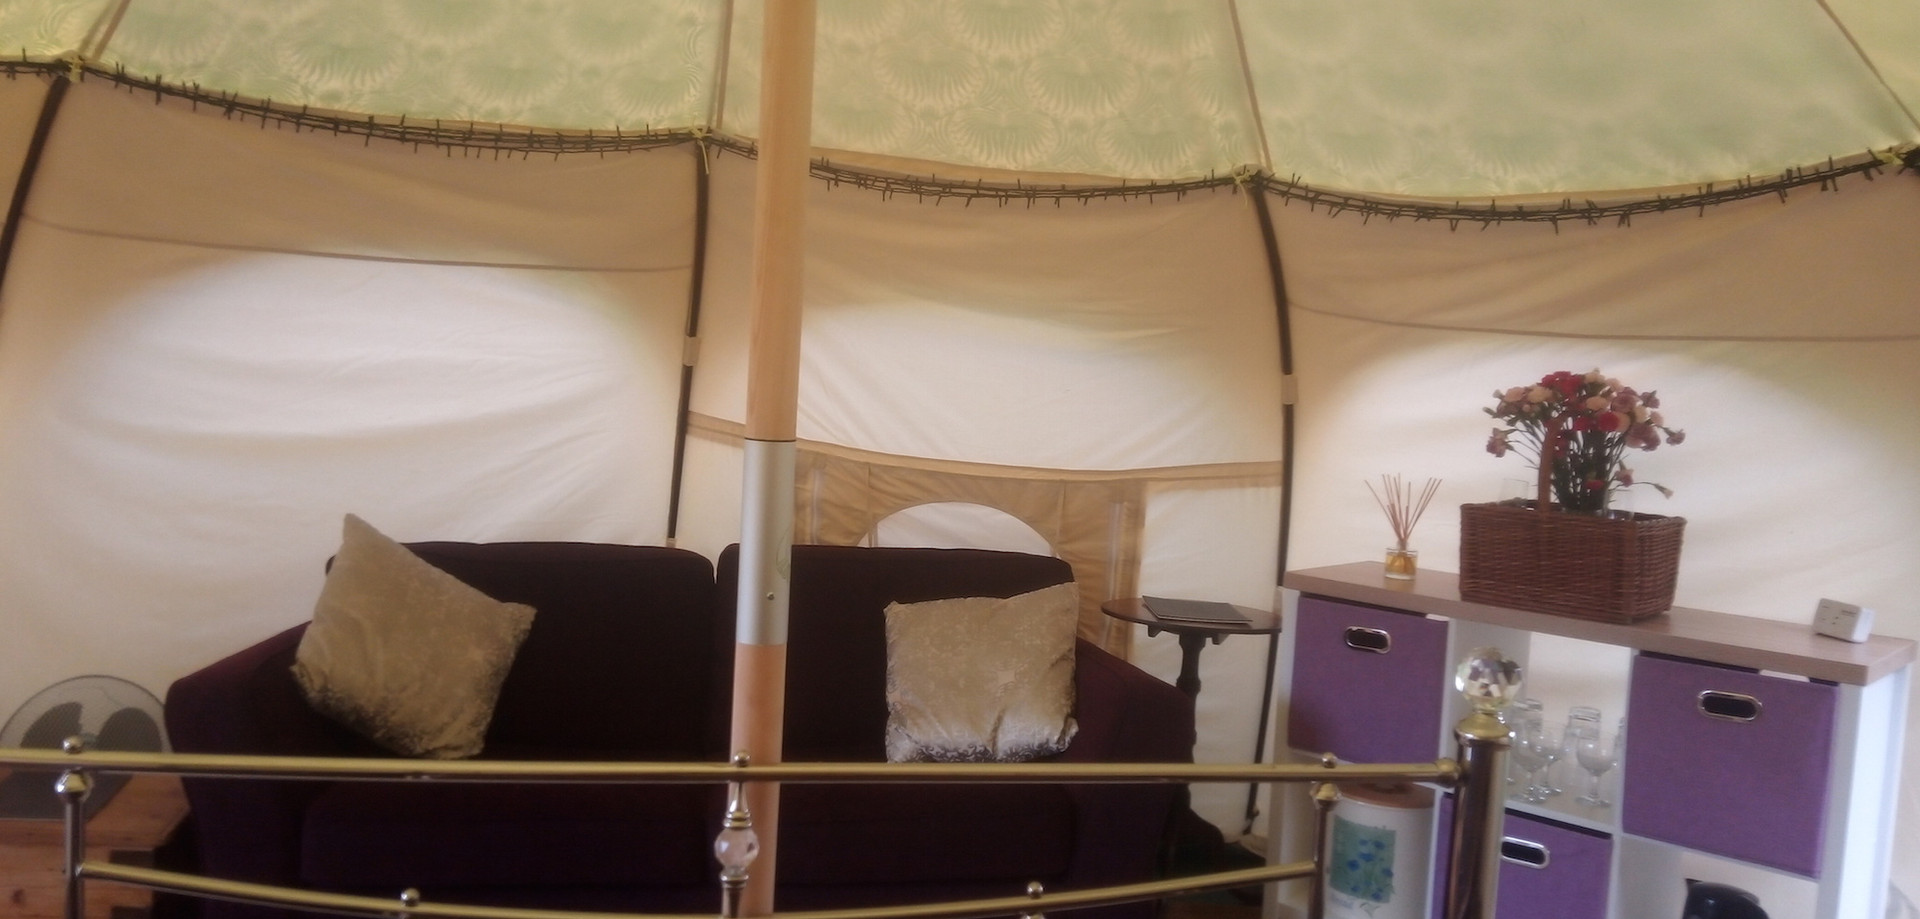 Full double bed with soft bedding provided